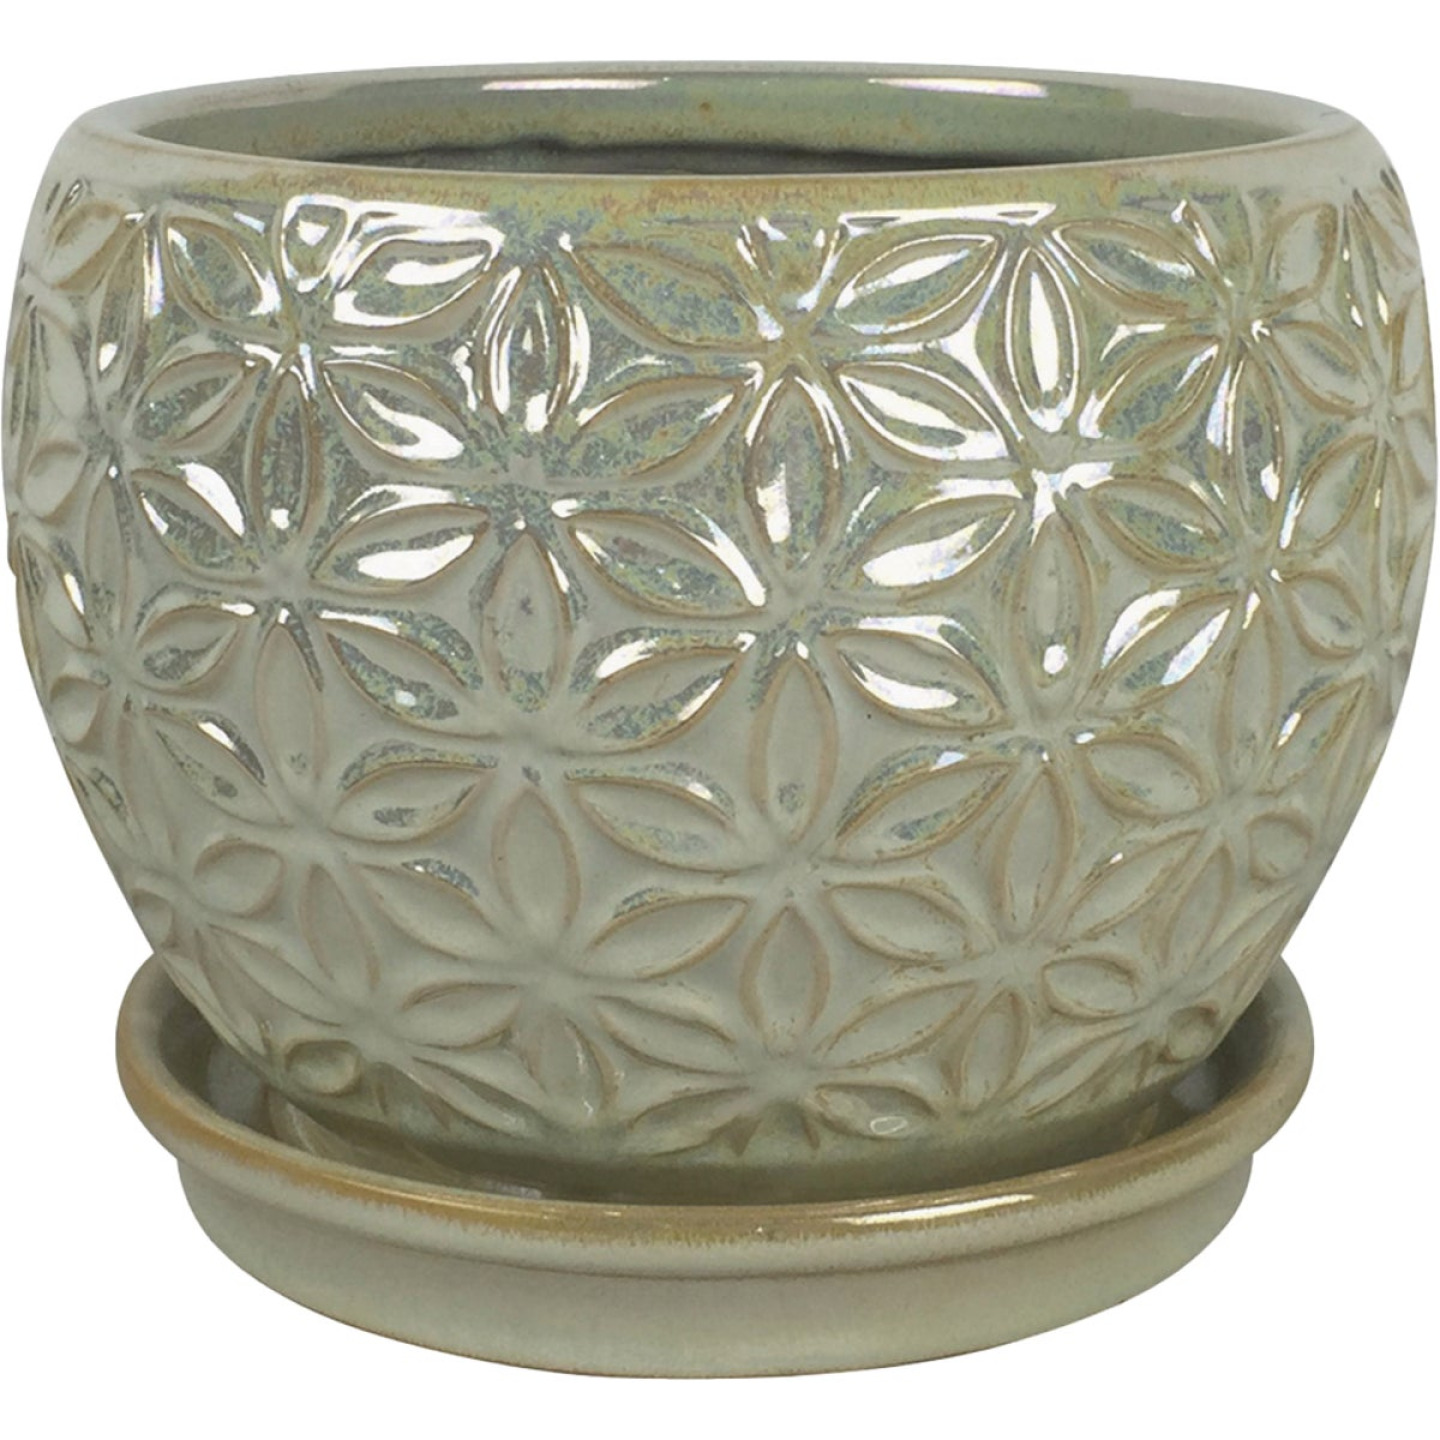 Southern Patio Elora 8 In. Ceramic Clayworks Pearl Planter Image 1